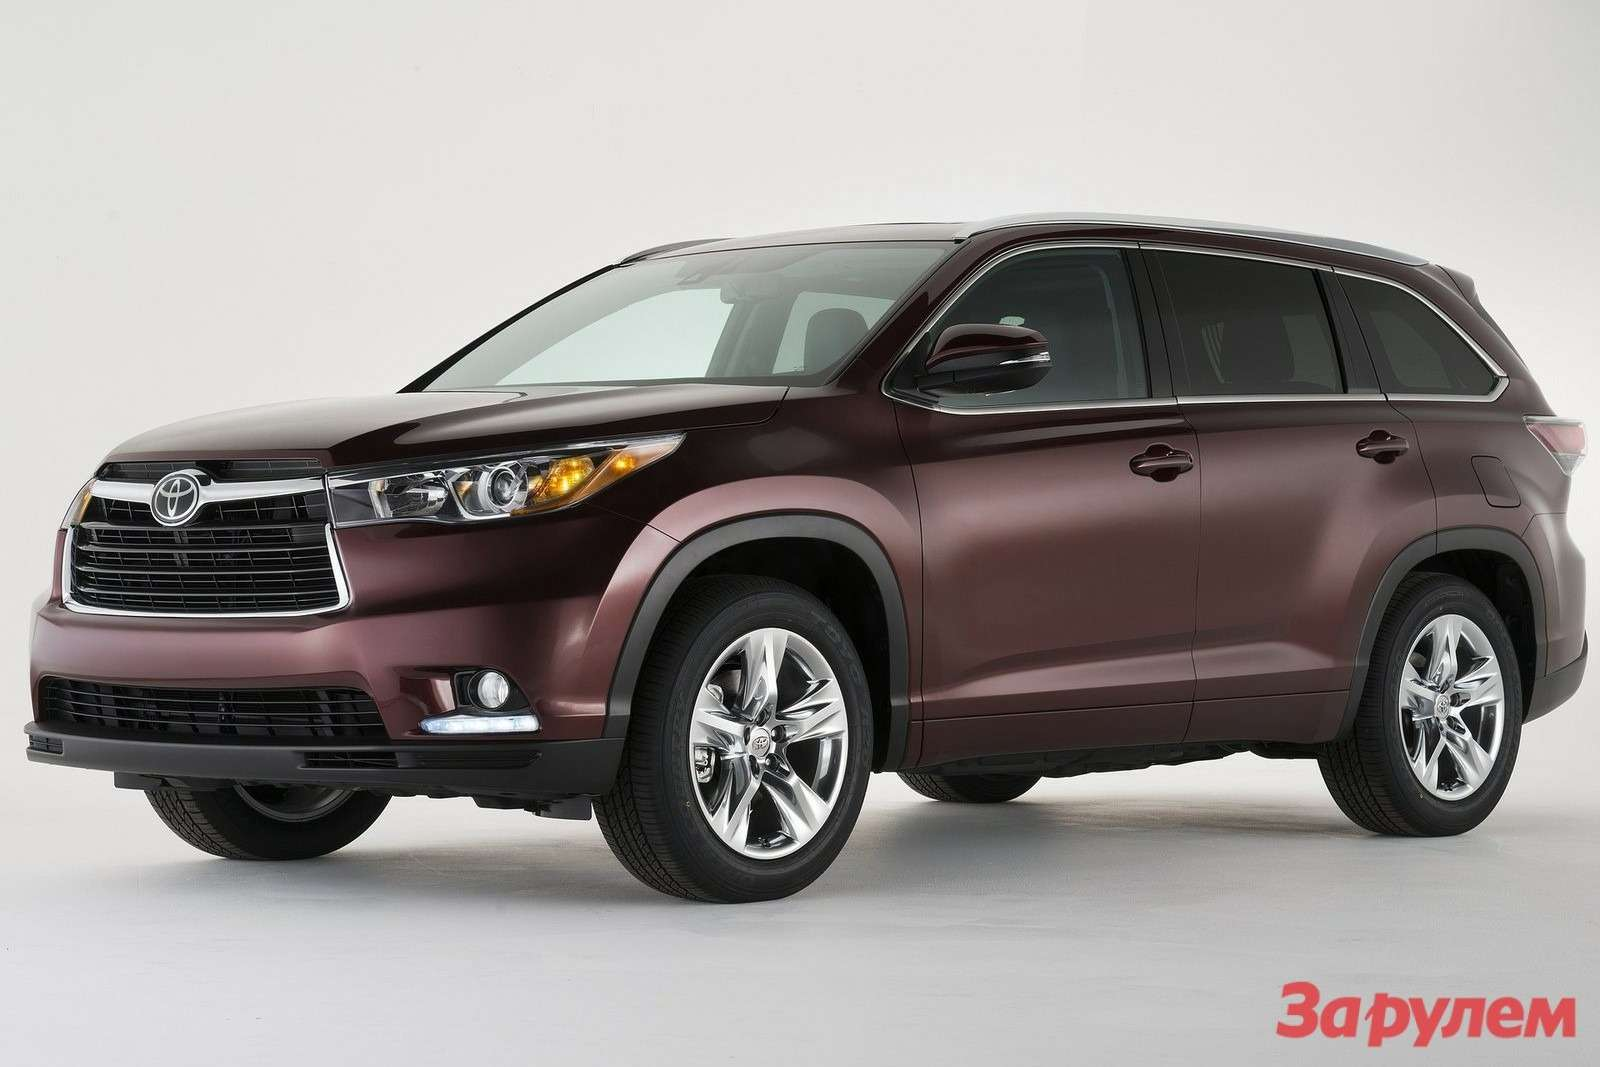 Toyota Highlander 2014 1600x1200 wallpaper 01